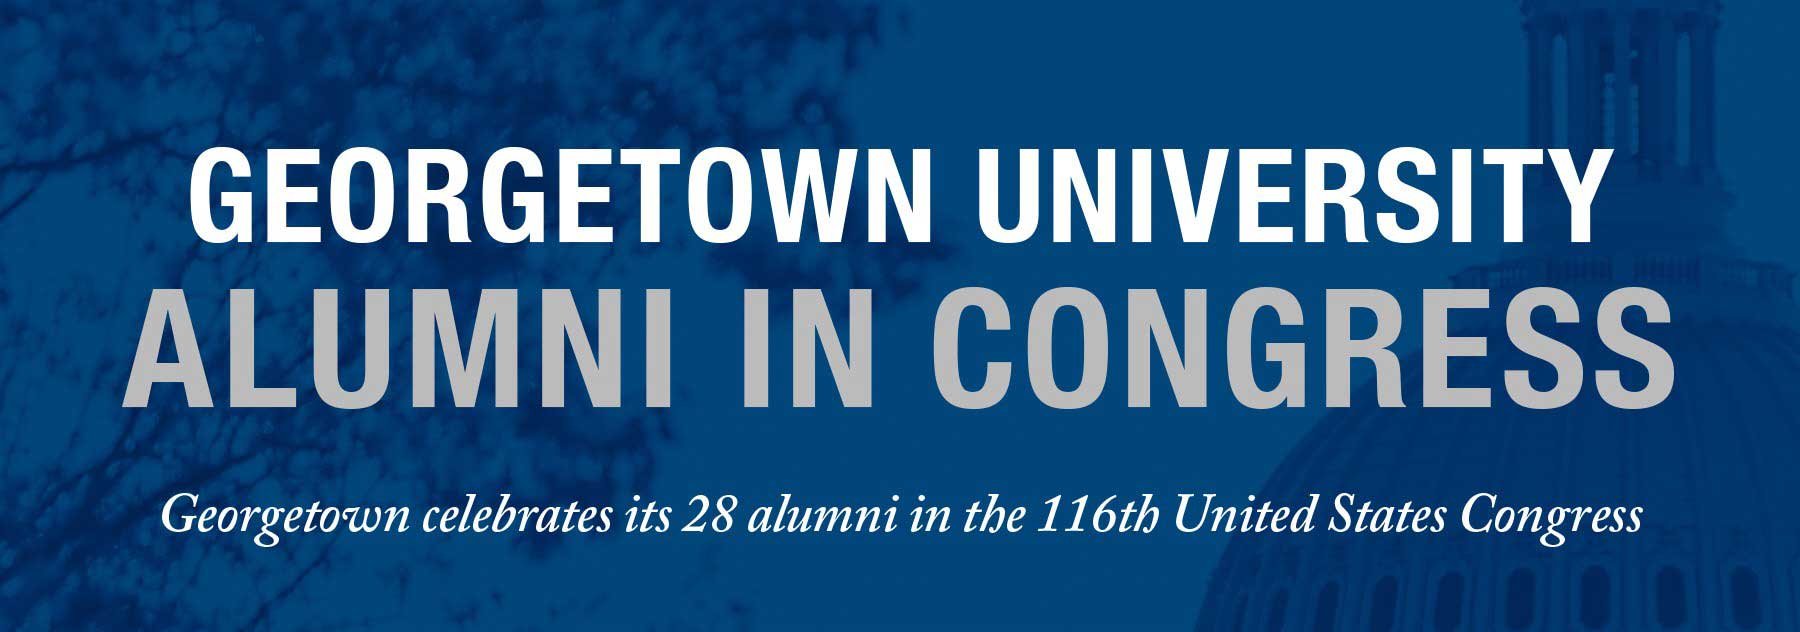 28 GEORGETOWN ALUMNI SERVING IN THE 116TH CONGRESS